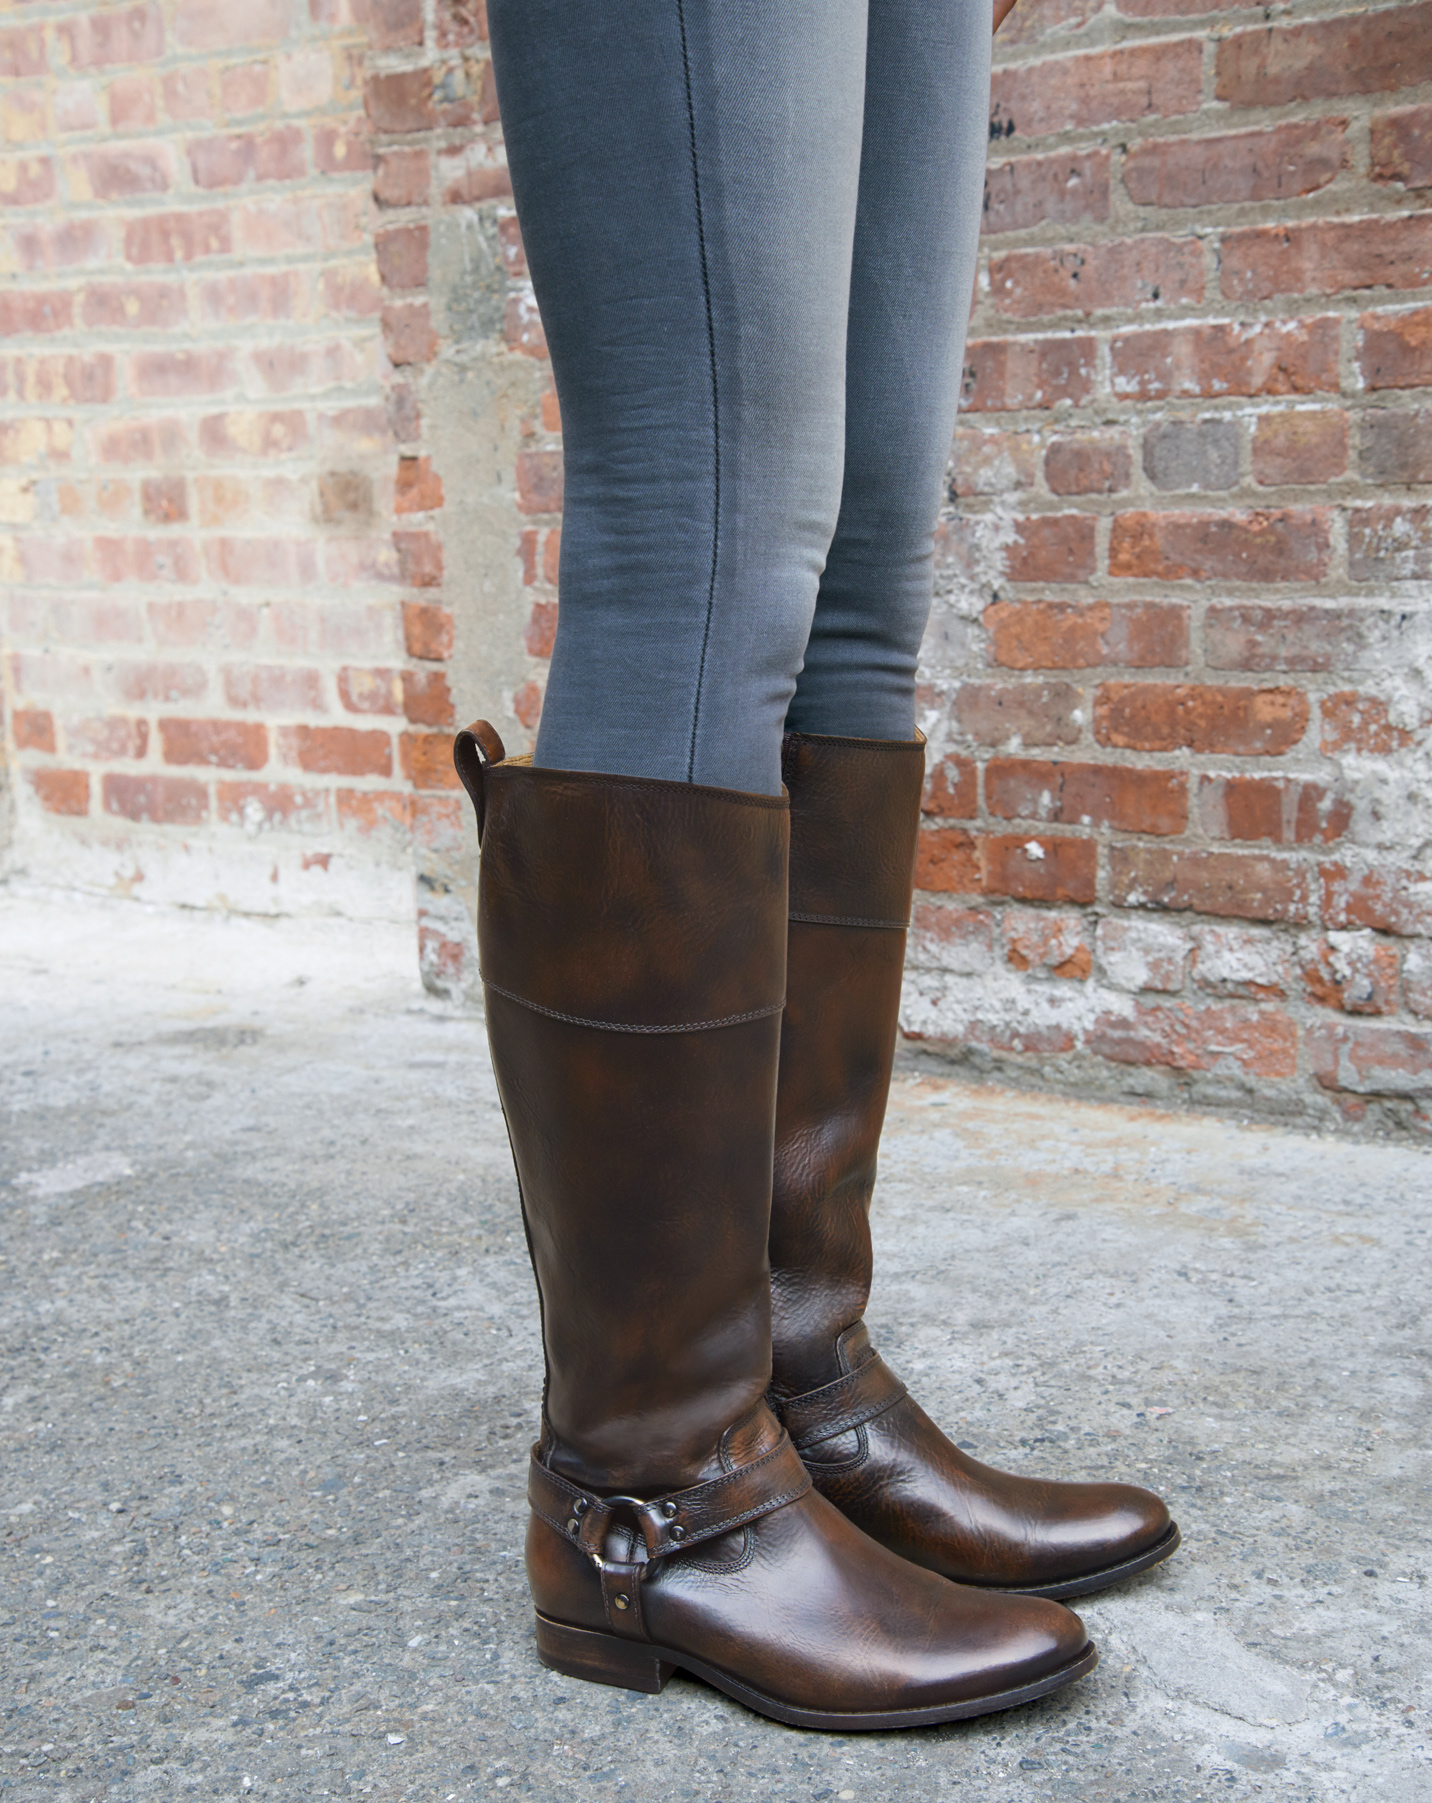 Score a pair of Frye's classic knee-high leather boots ($266, originally $398) now and wear them all through Fall and Winter.